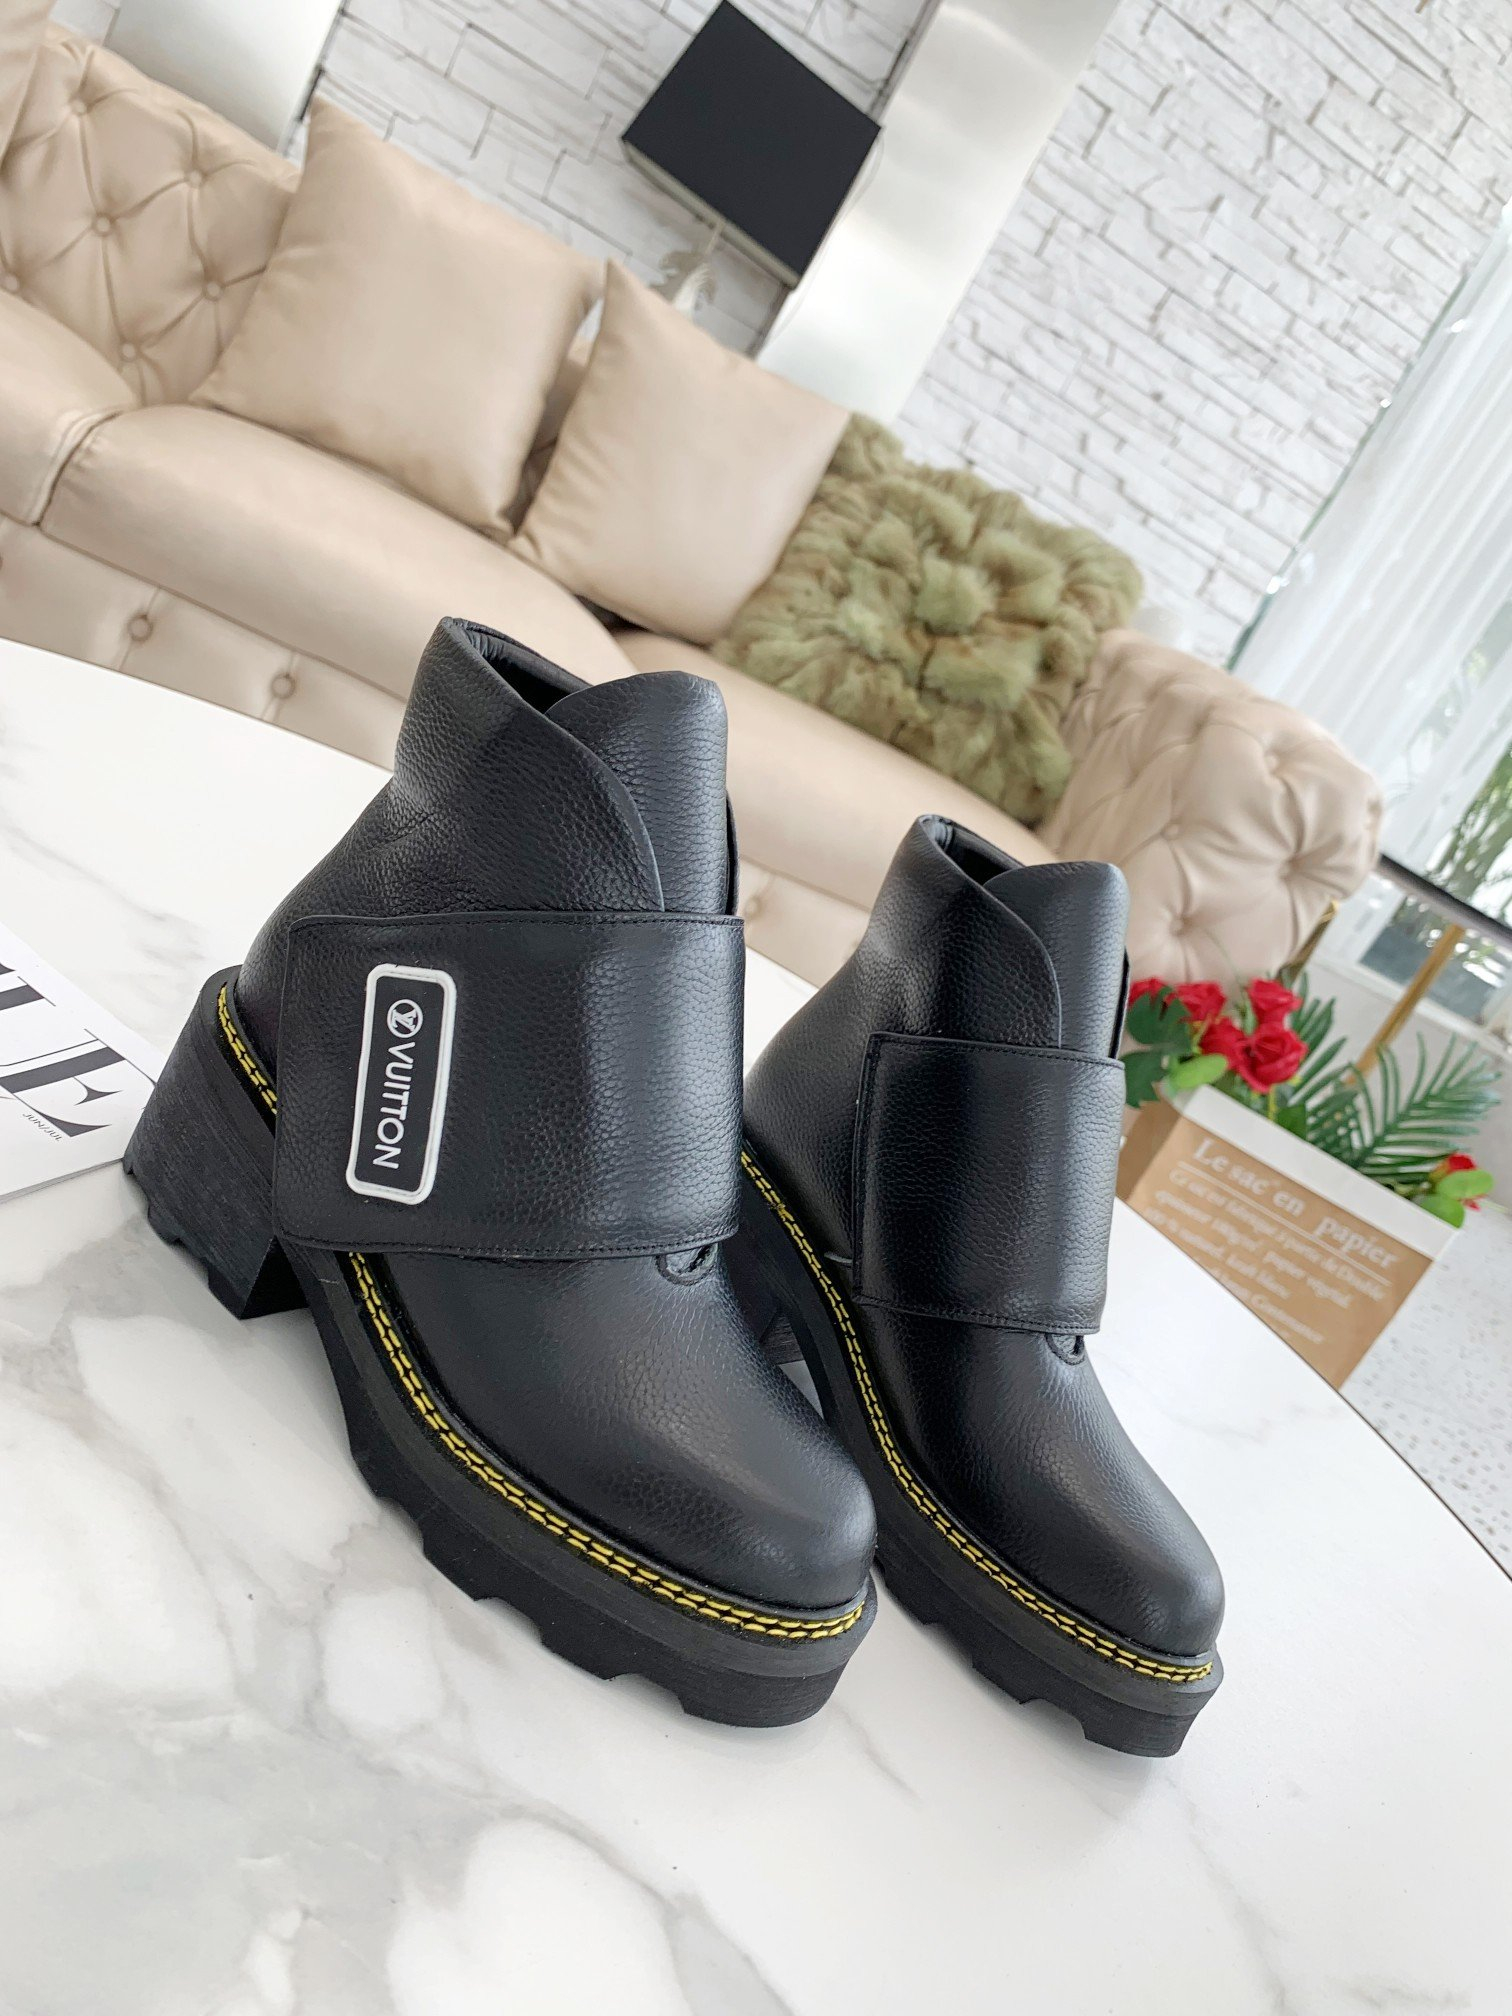 Image of Louis Vuitton LV Leather boots Fashionable Leisure Boots Shoes 08622